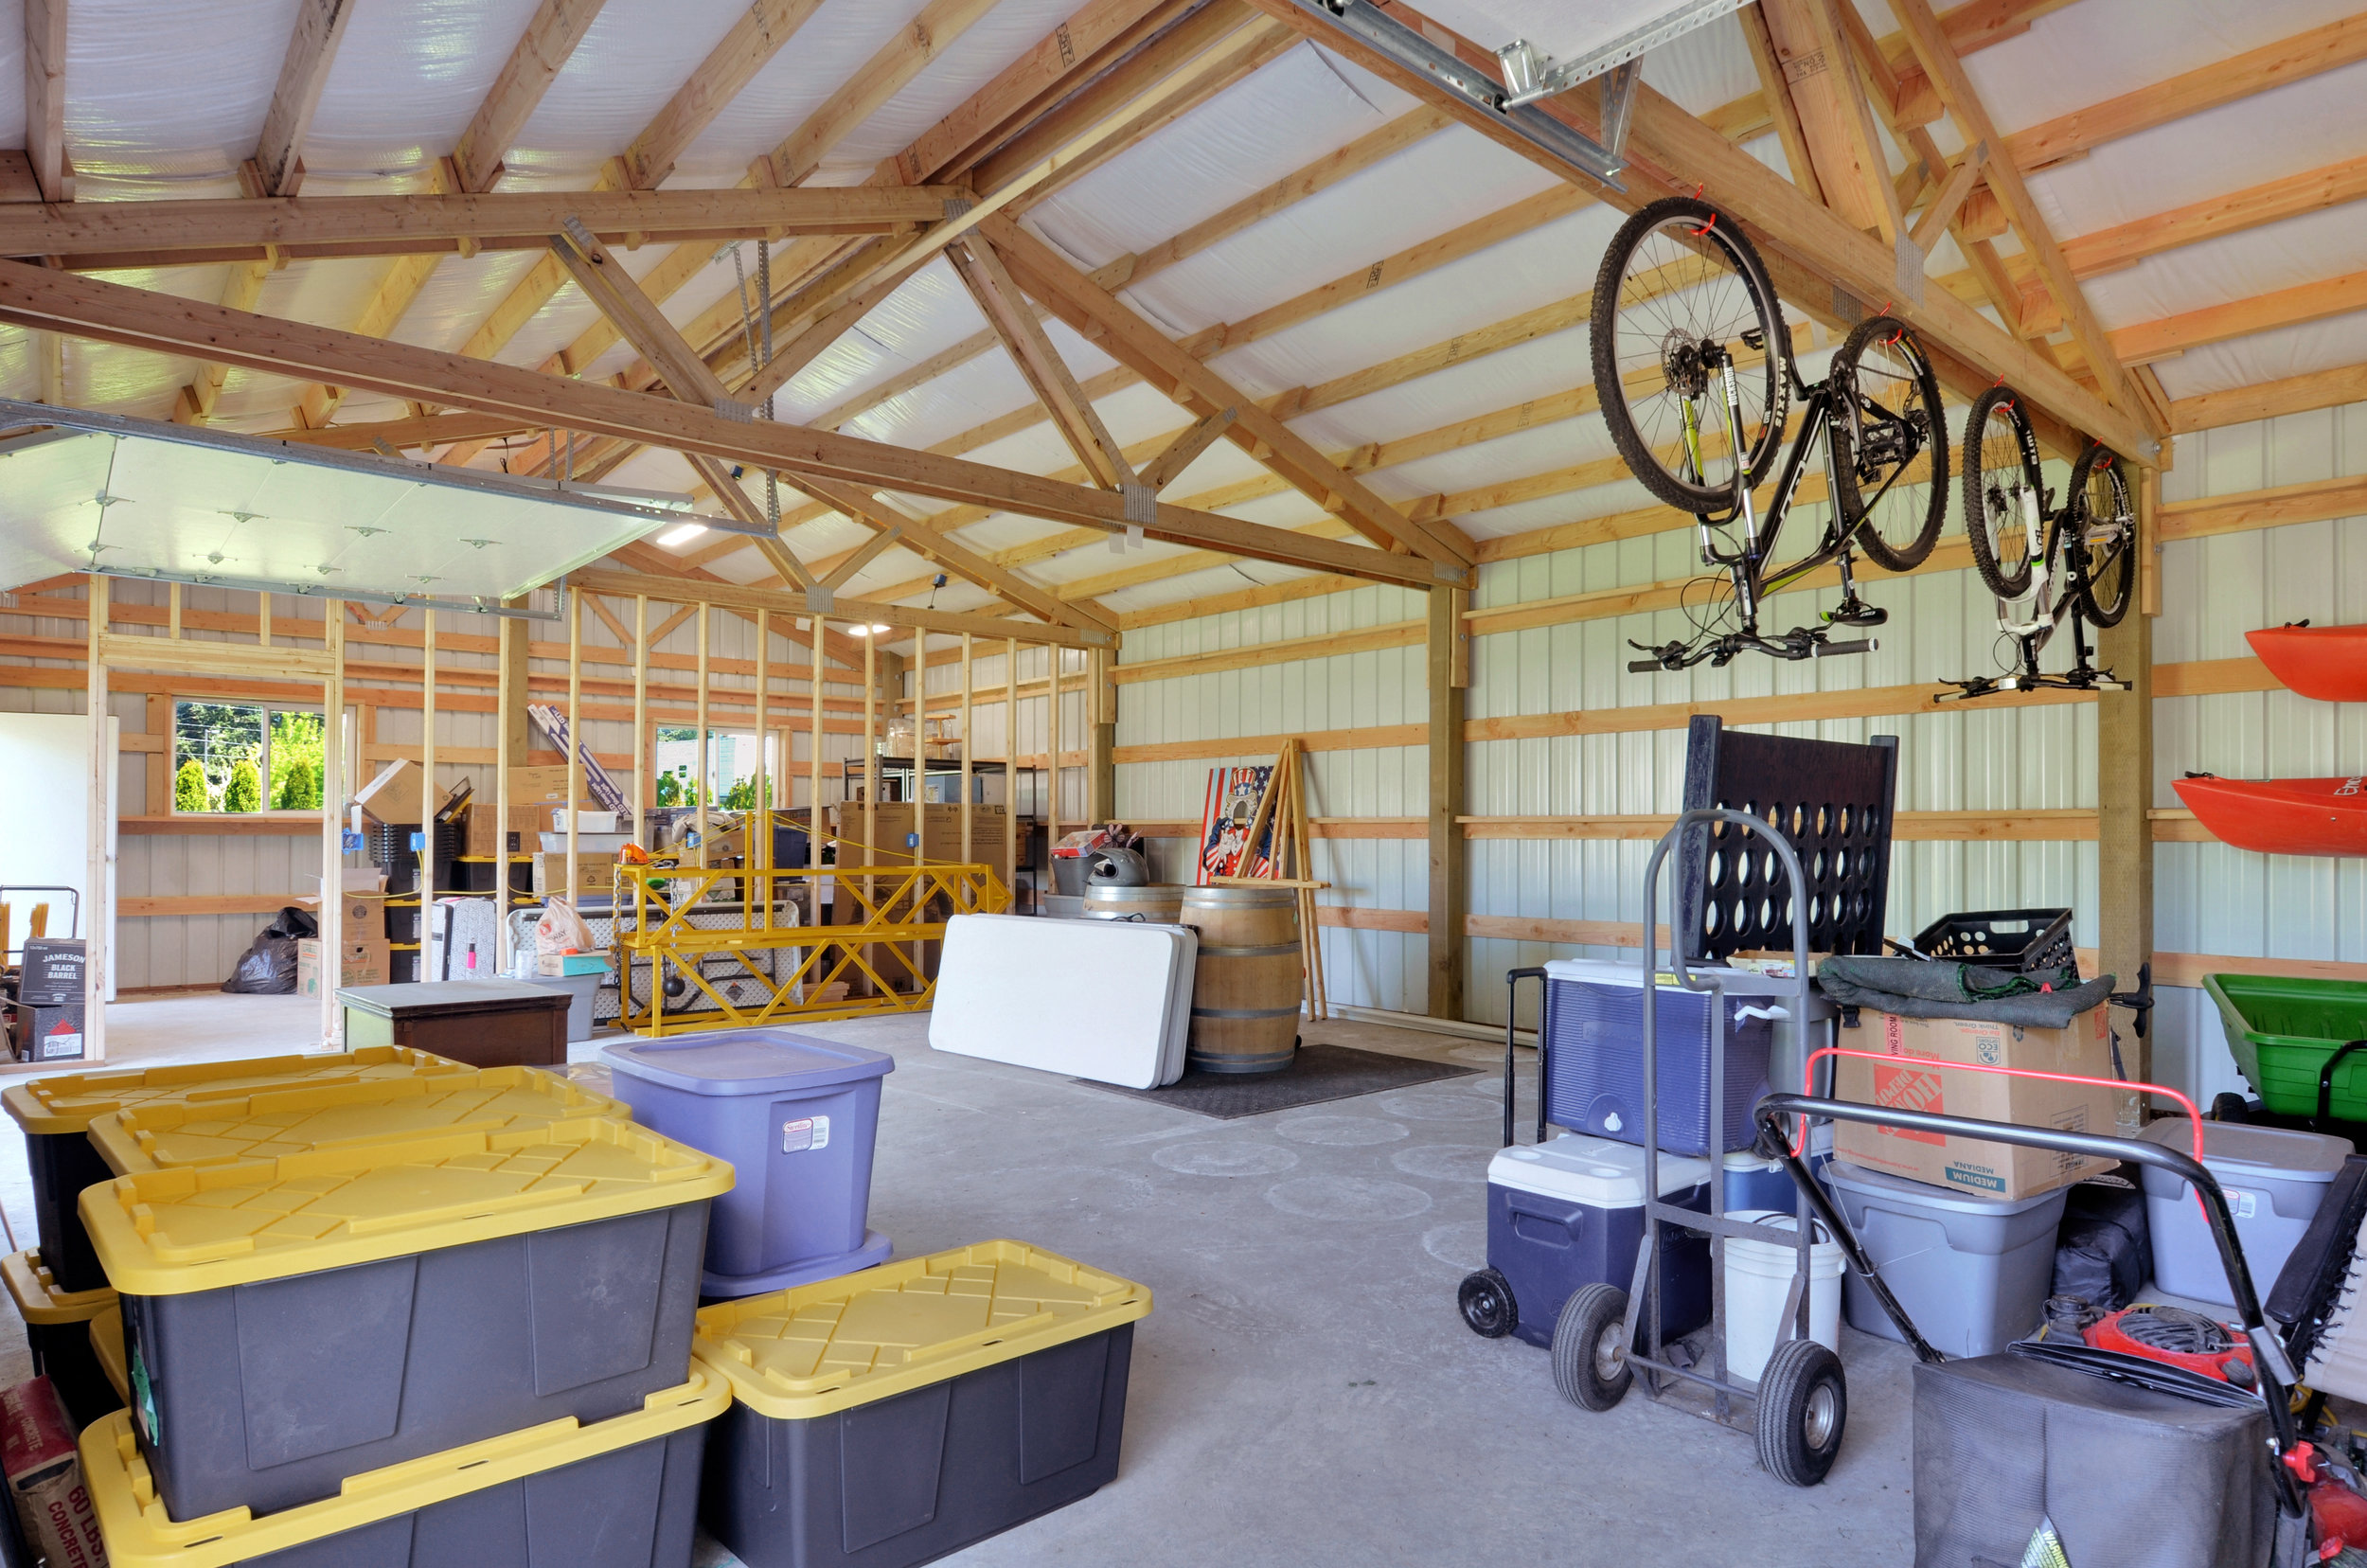 A glimpse at the interior of the newly built workshop. Lots of space for boats, bikes, vehicles, and tools.